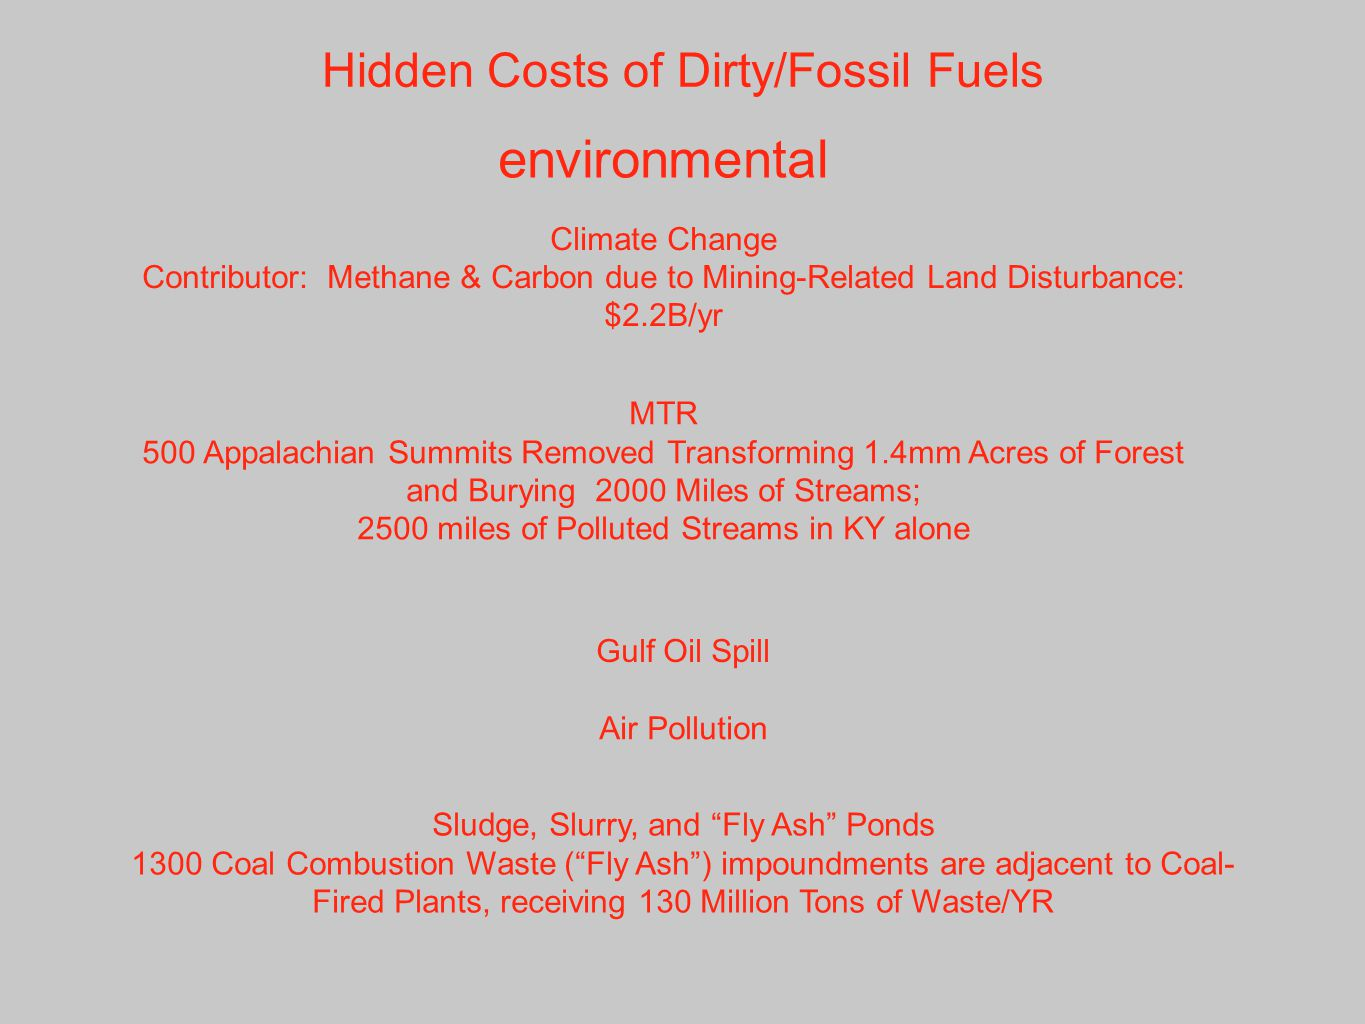 Hidden Costs of Dirty/Fossil Fuels environmental Climate Change Contributor: Methane & Carbon due to Mining-Related Land Disturbance: $2.2B/yr Gulf Oi